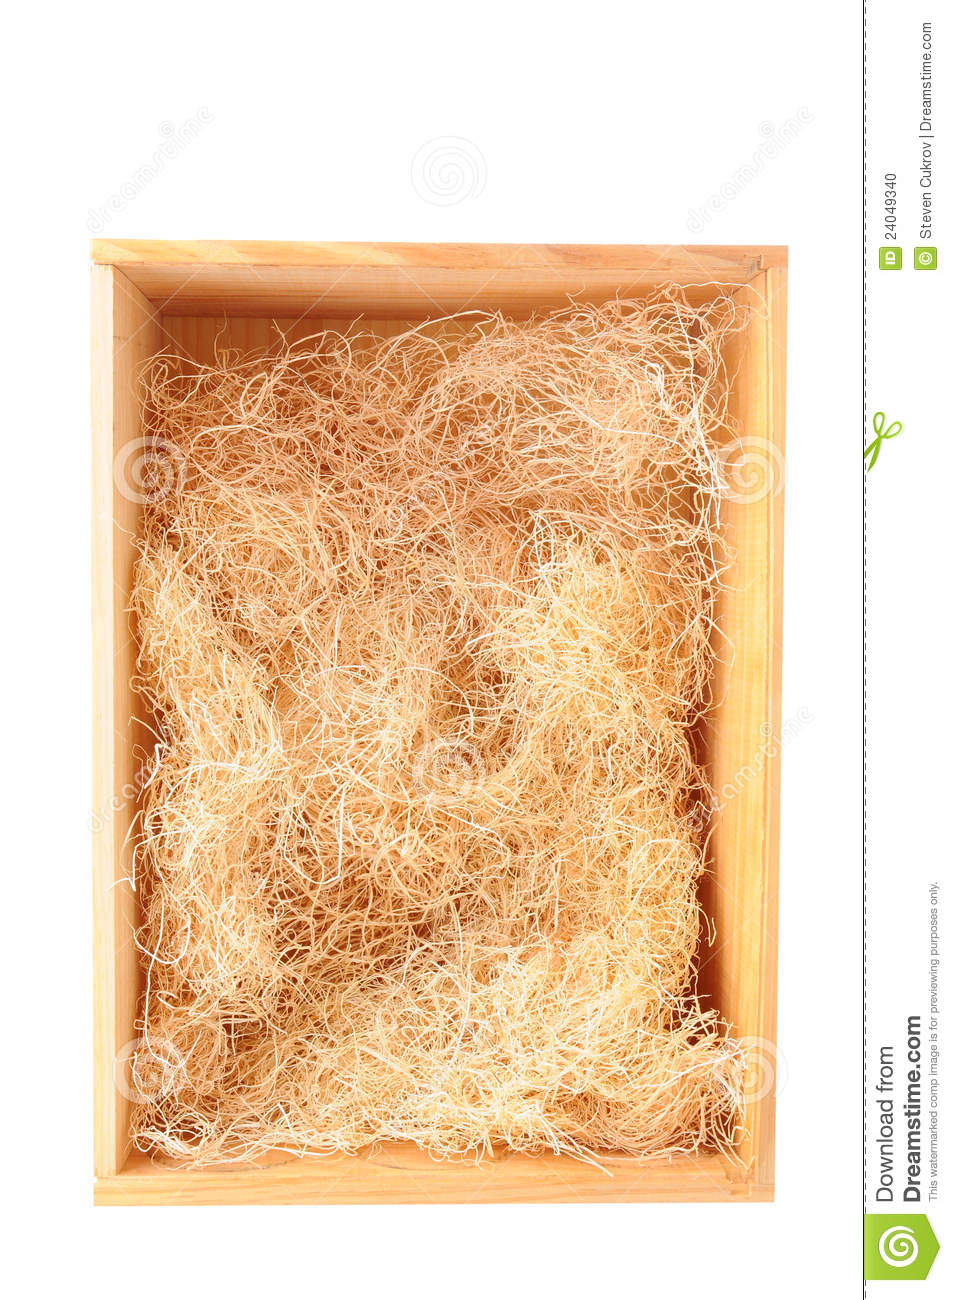 Wood Shipping Box With Straw Stock Photo - Image: 24049340